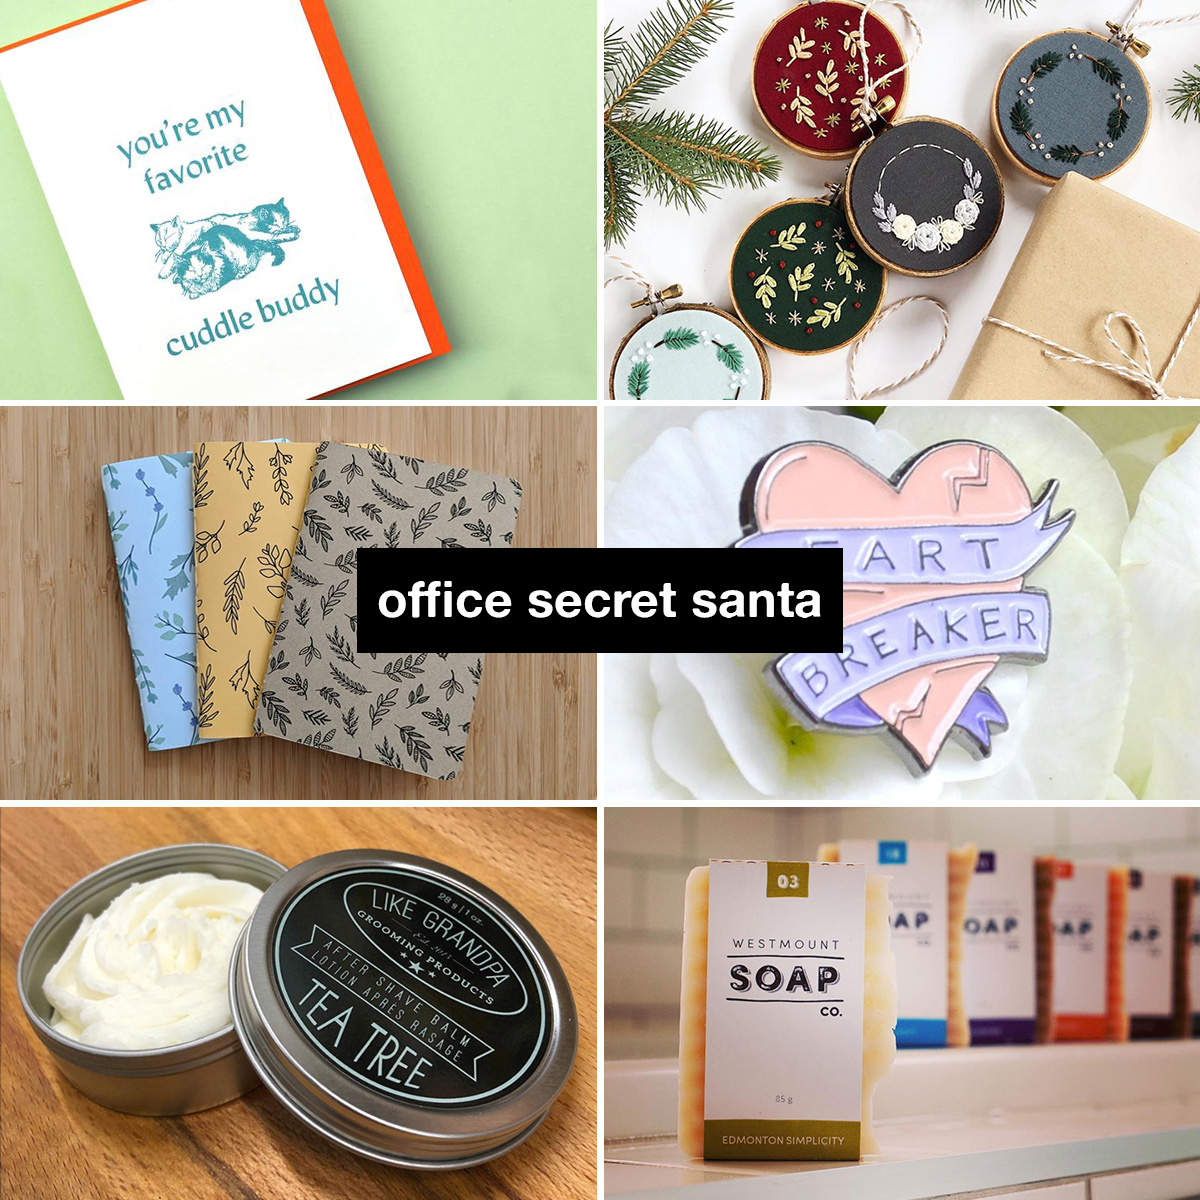 RB-OfficeSecretSanta copy.jpg